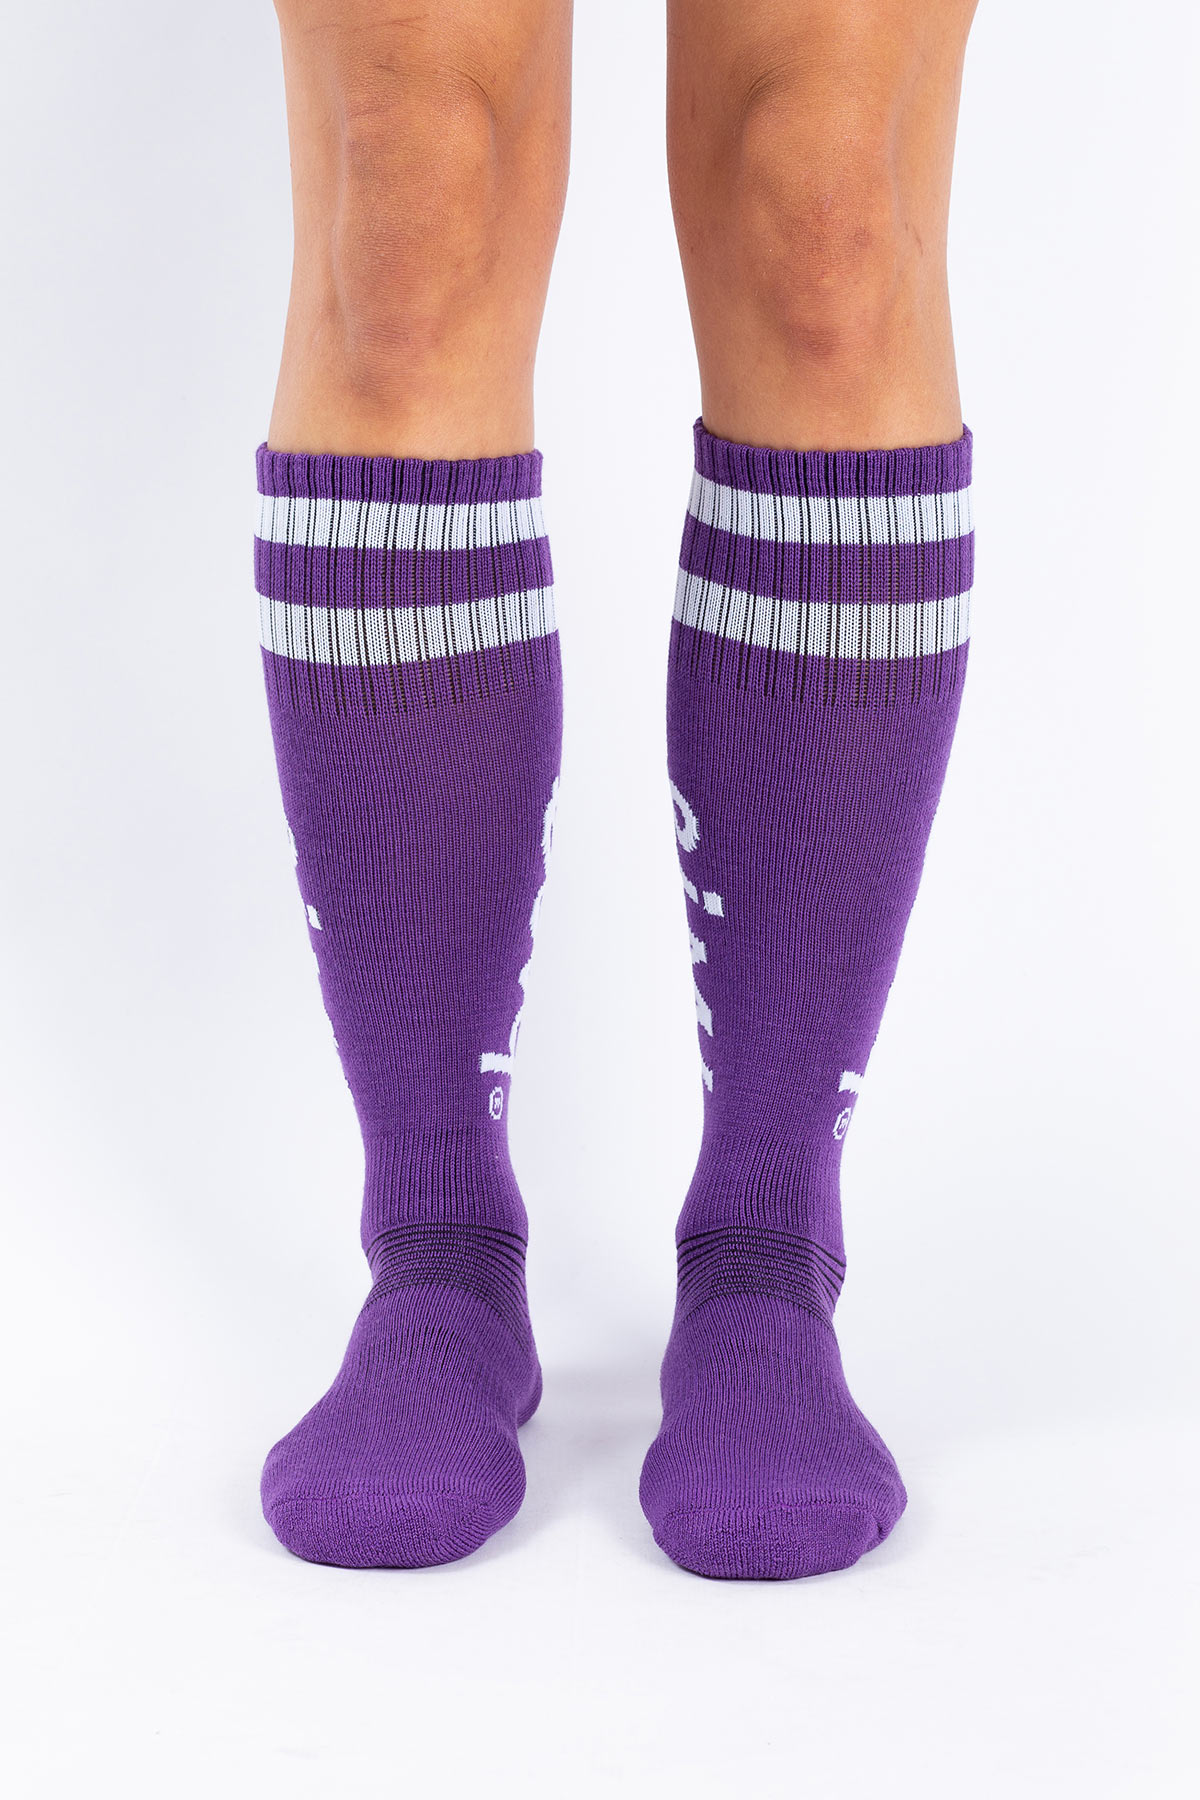 Strumpor | Cheerleader Wool - Grape | 36-38